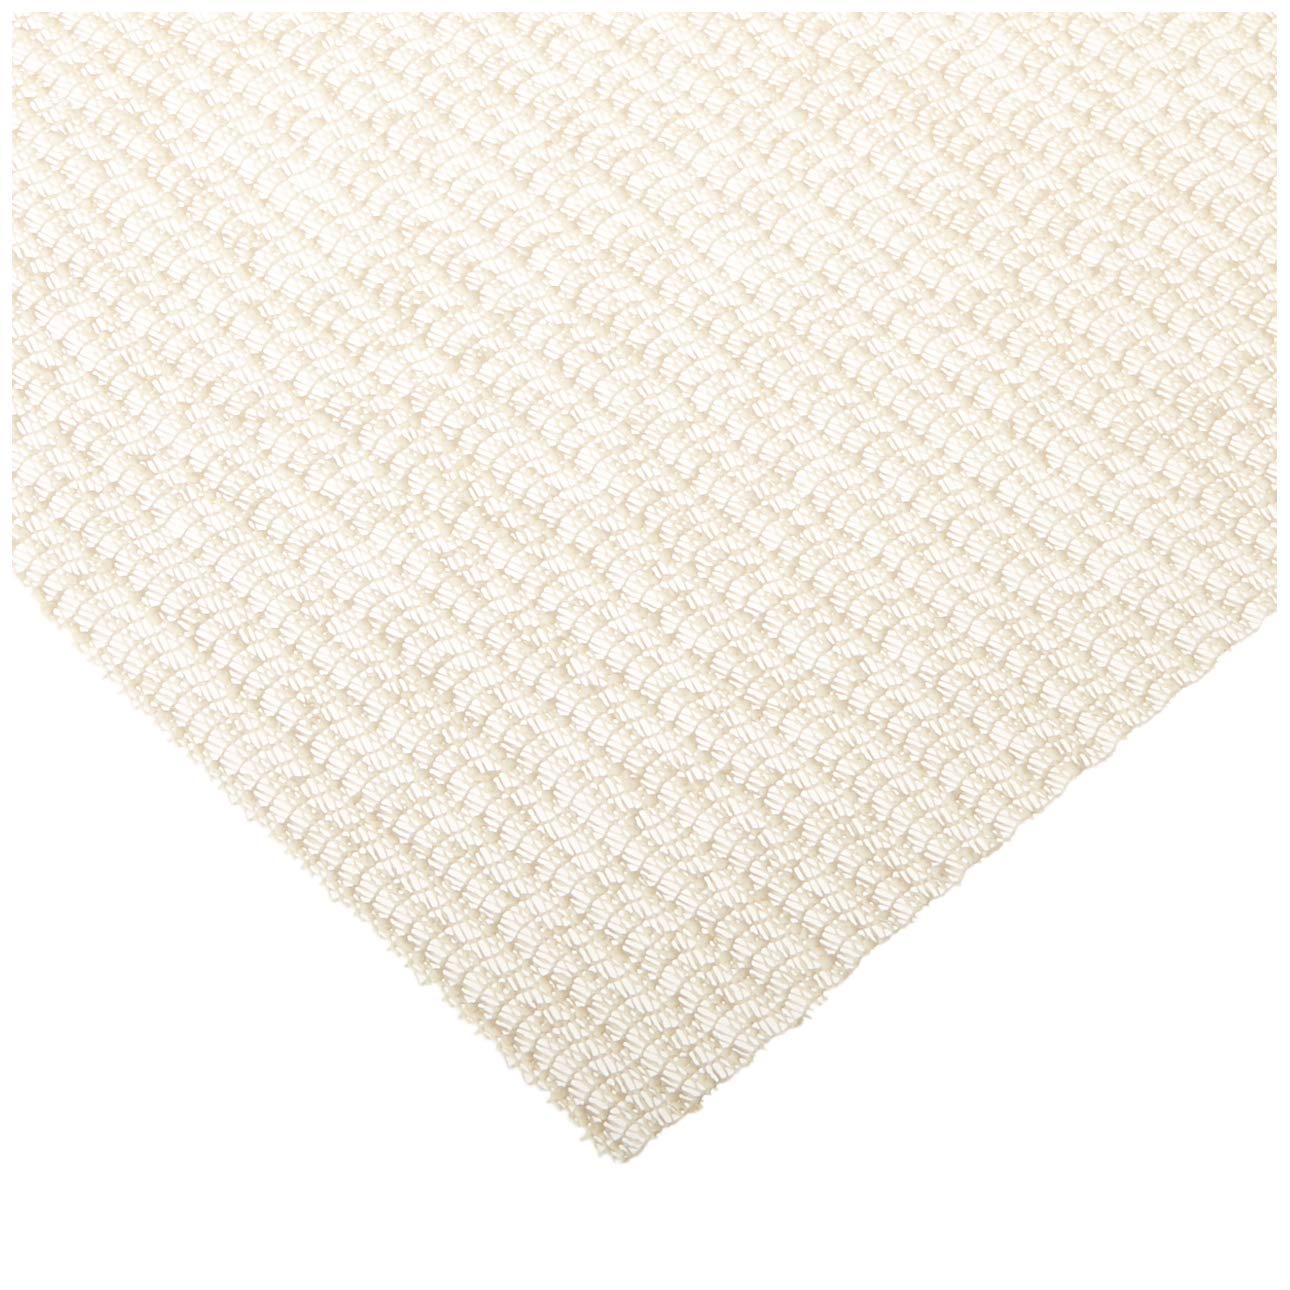 Grip-It Rug Stop Natural Non-Slip Pad for Rugs on Hard Surface Floors 2 by 4-Feet